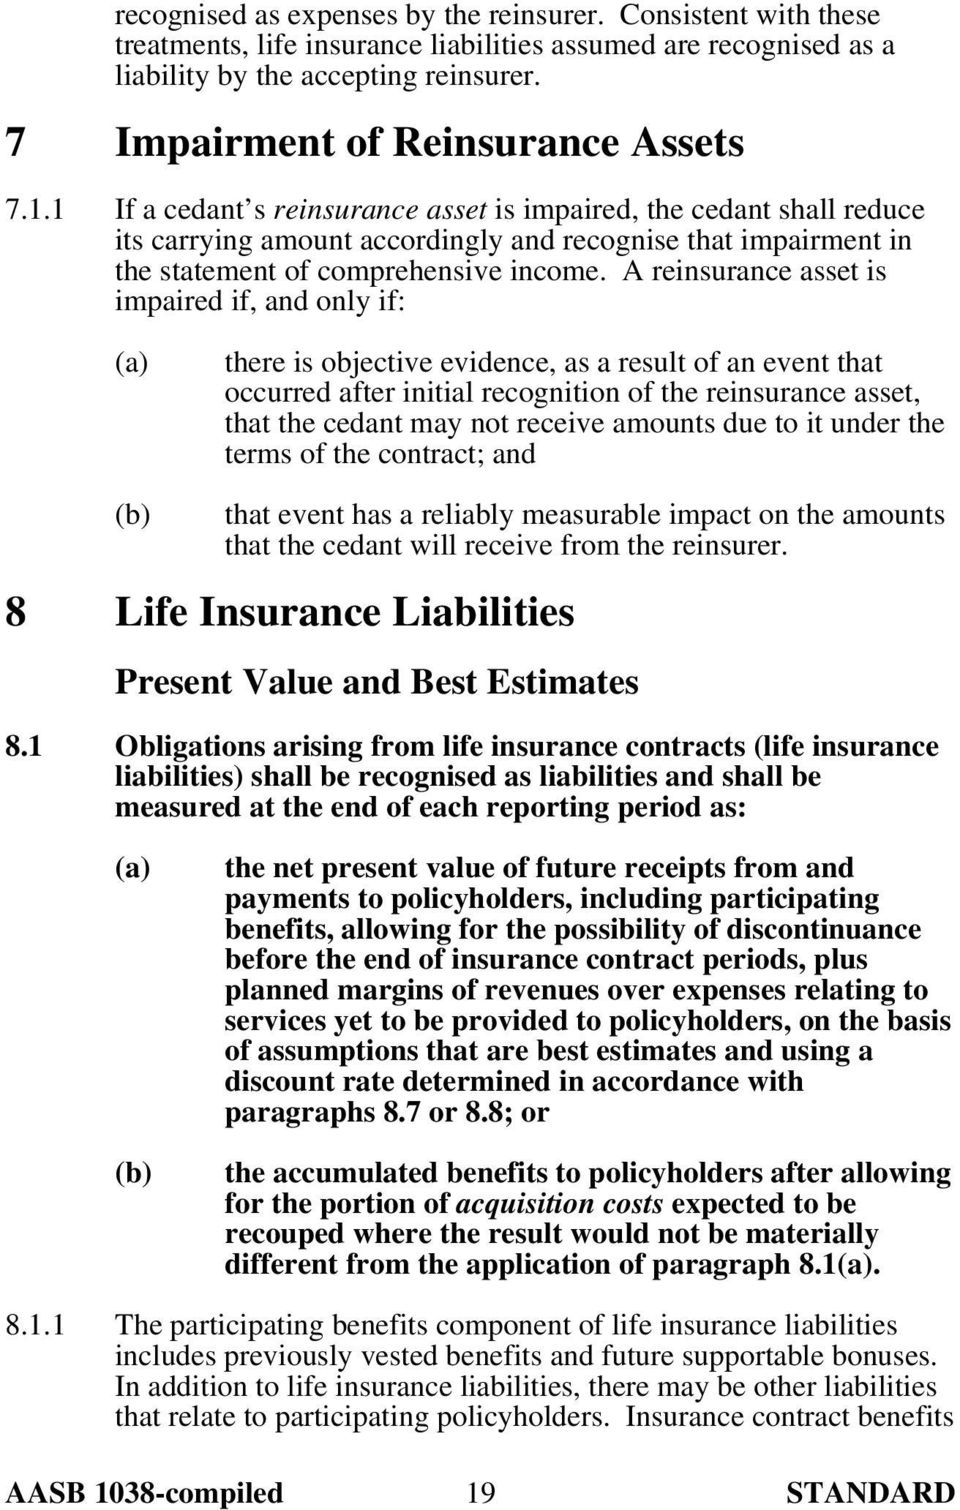 1 If a cedant s reinsurance asset is impaired, the cedant shall reduce its carrying amount accordingly and recognise that impairment in the statement of comprehensive income.